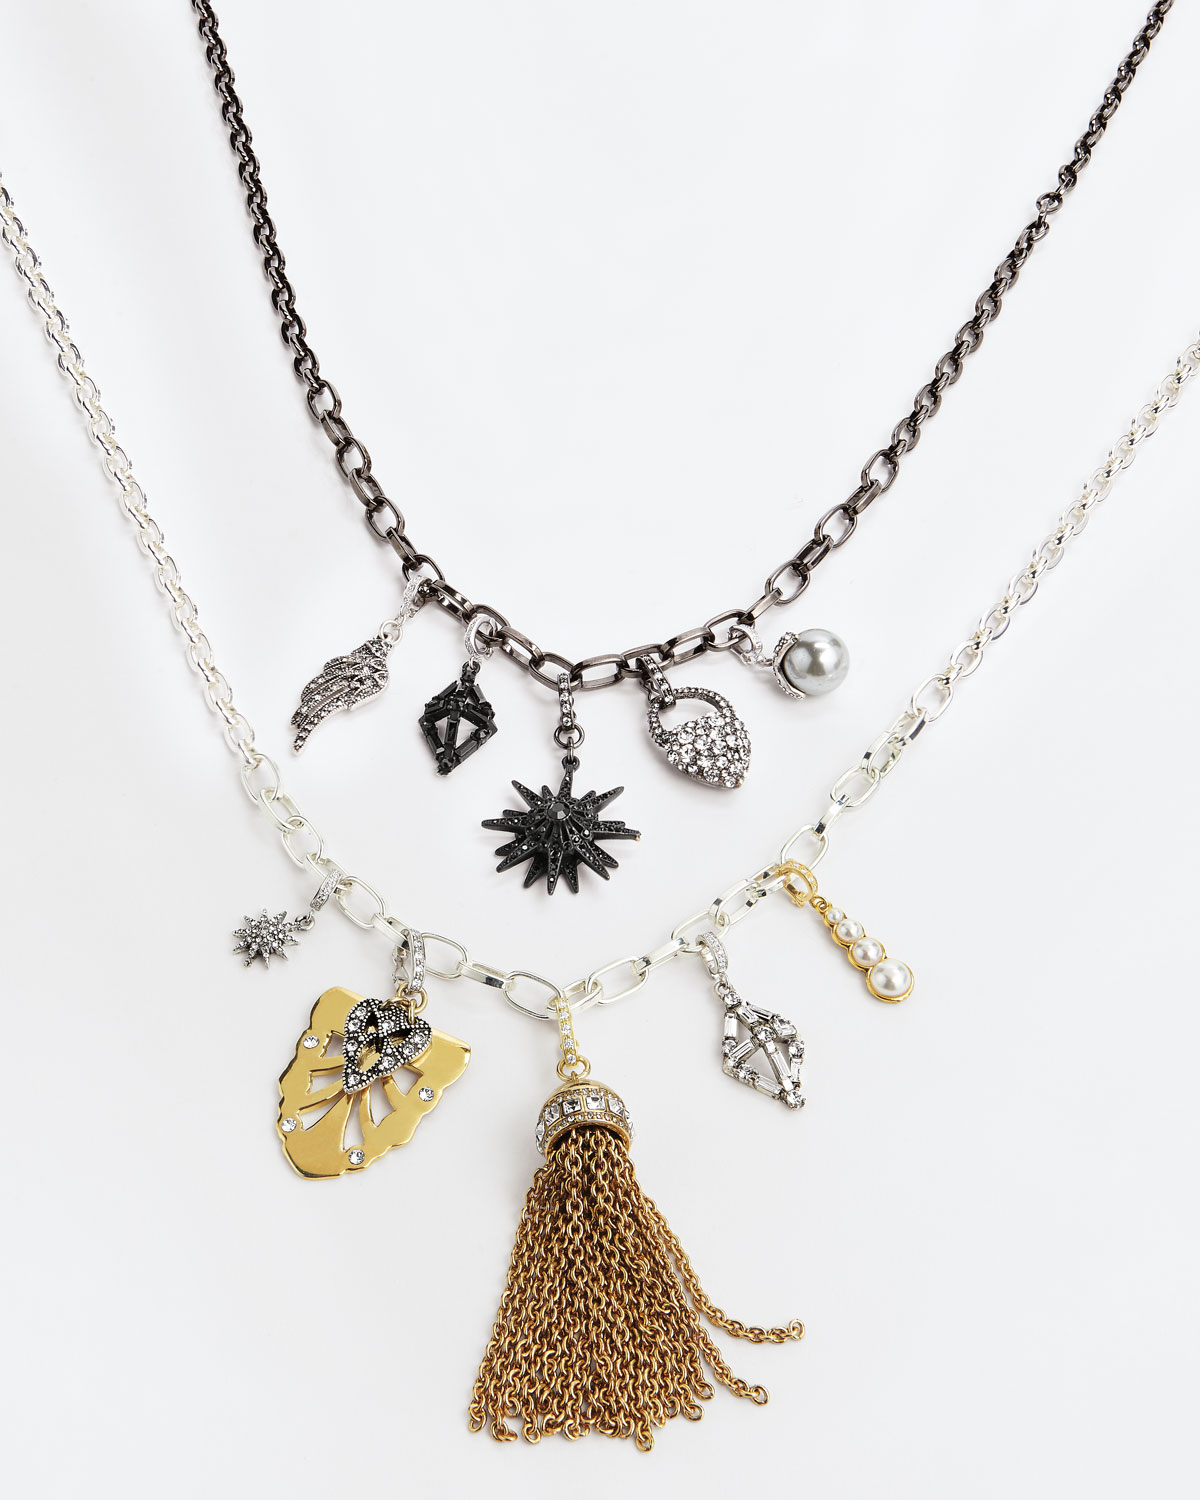 Lulu Frost Mixed Golden & Silvertone Charm Necklace mQ1N76